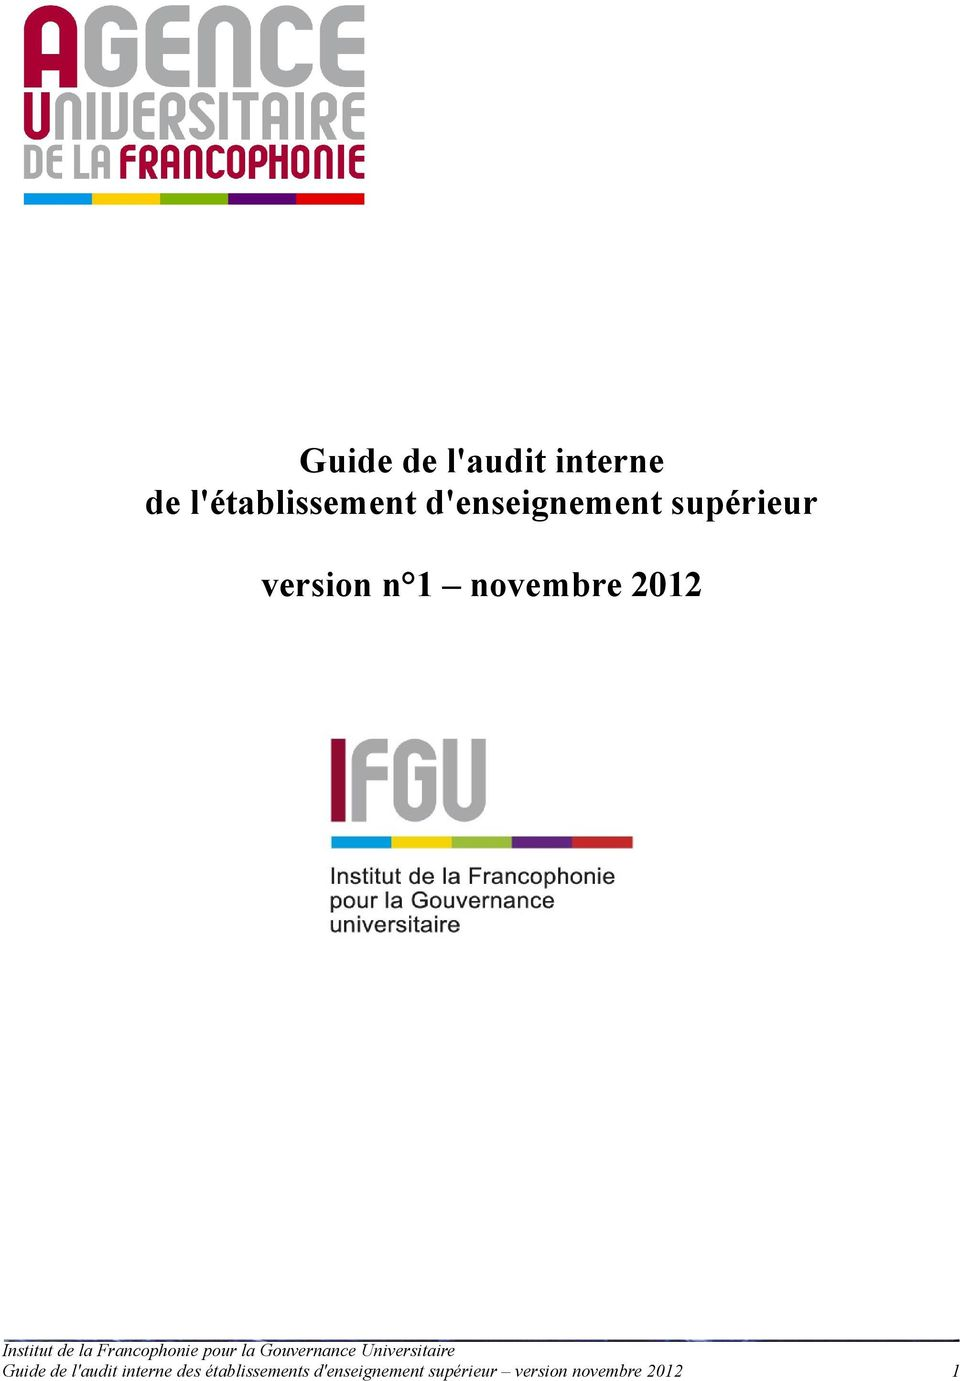 2012 Guide de l'audit interne des